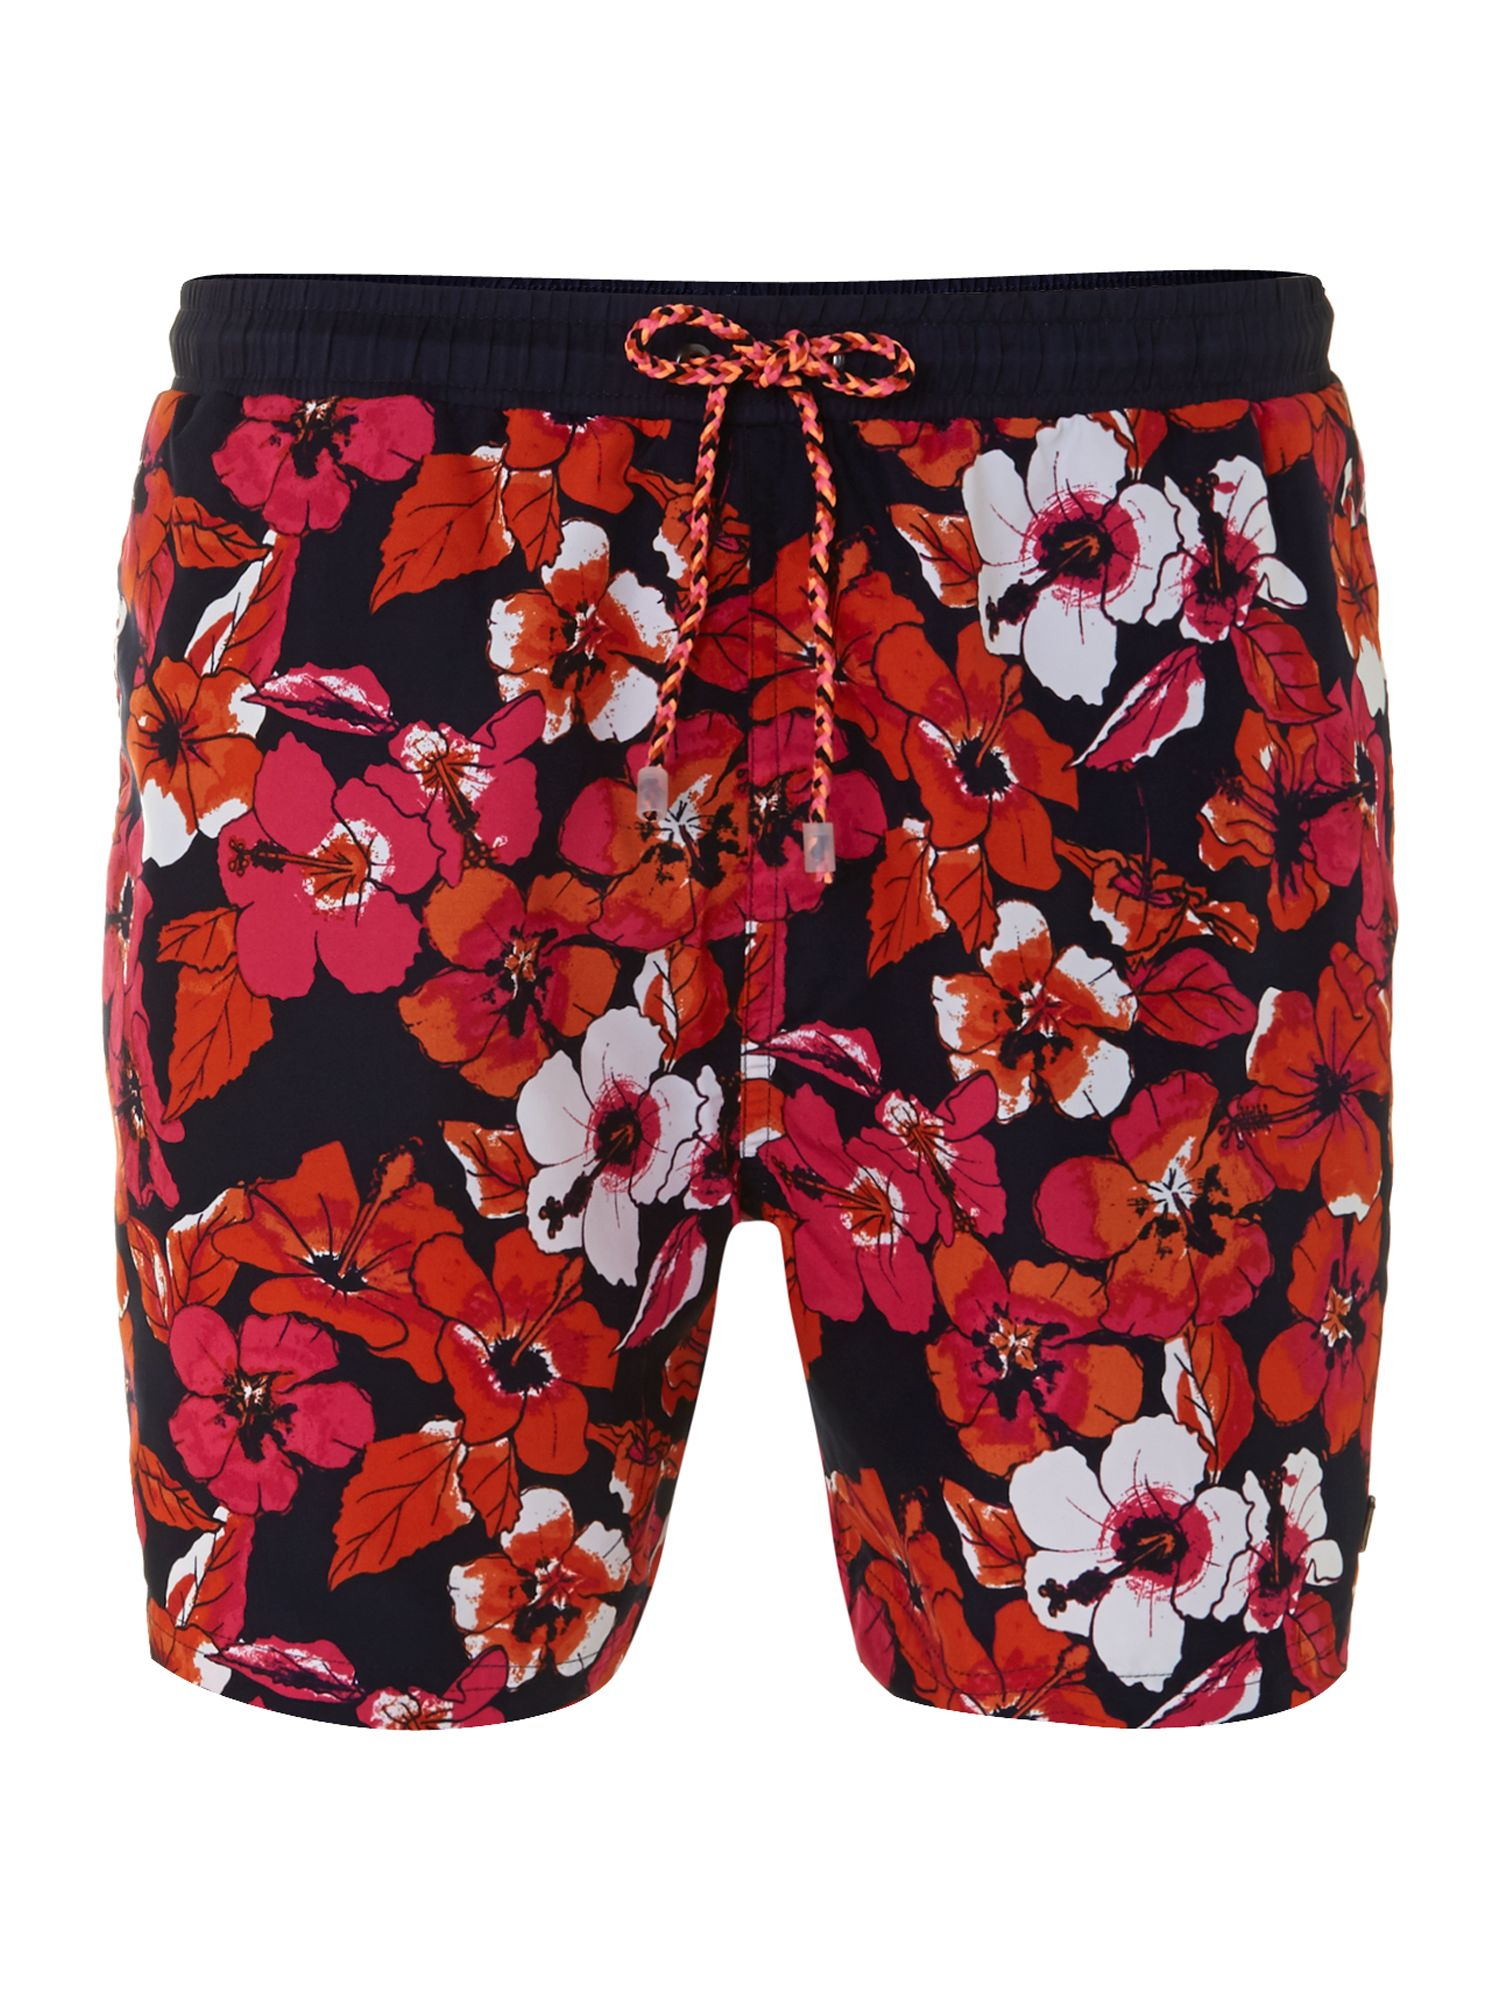 Piranha floral print swim trunk